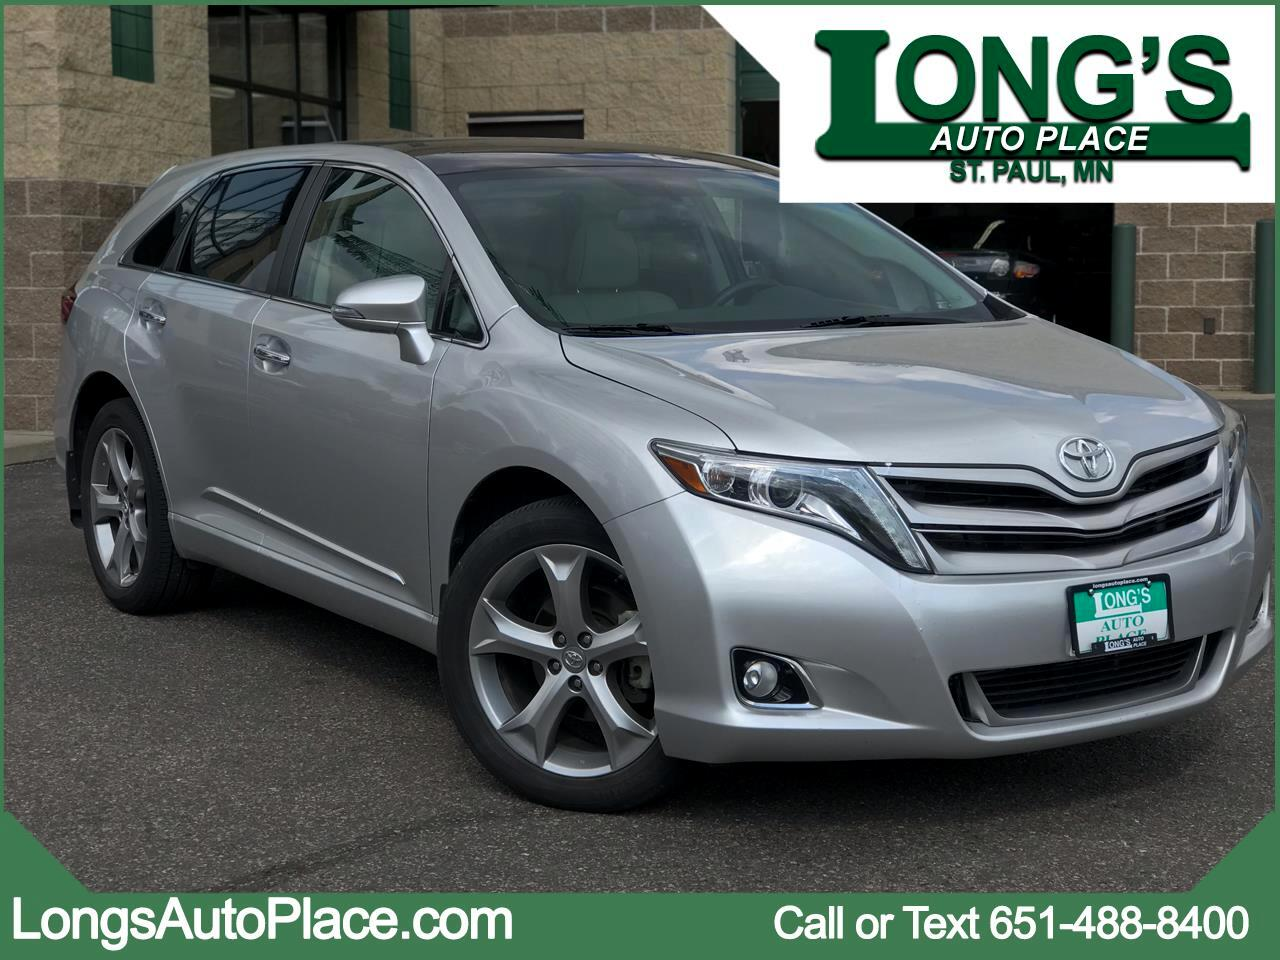 2013 Toyota Venza 4dr Wgn V6 AWD Limited (Natl)